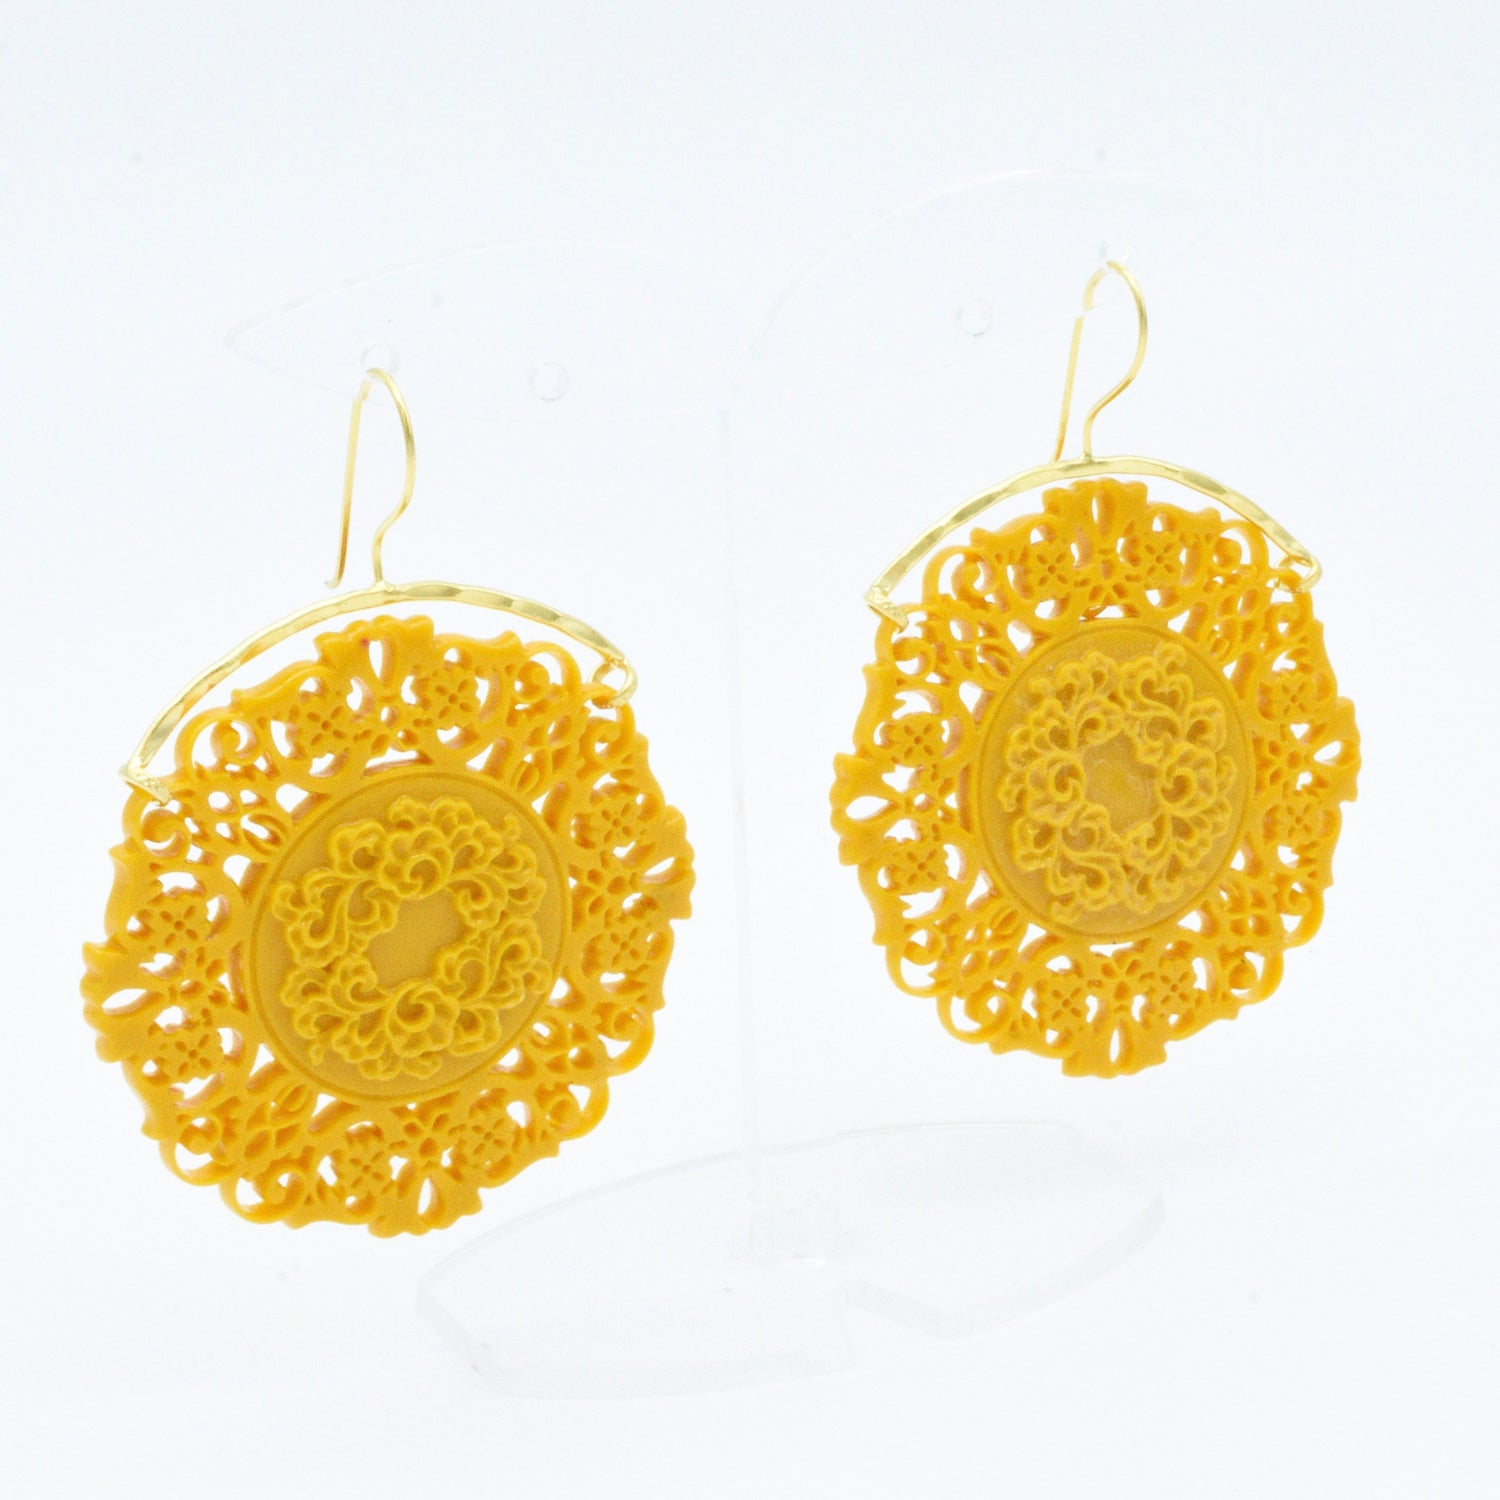 Aylas ottoman gold plated Acrylic stone filigree earrings - Ottoman Handmade Jewellery Hand Made Gold Plated